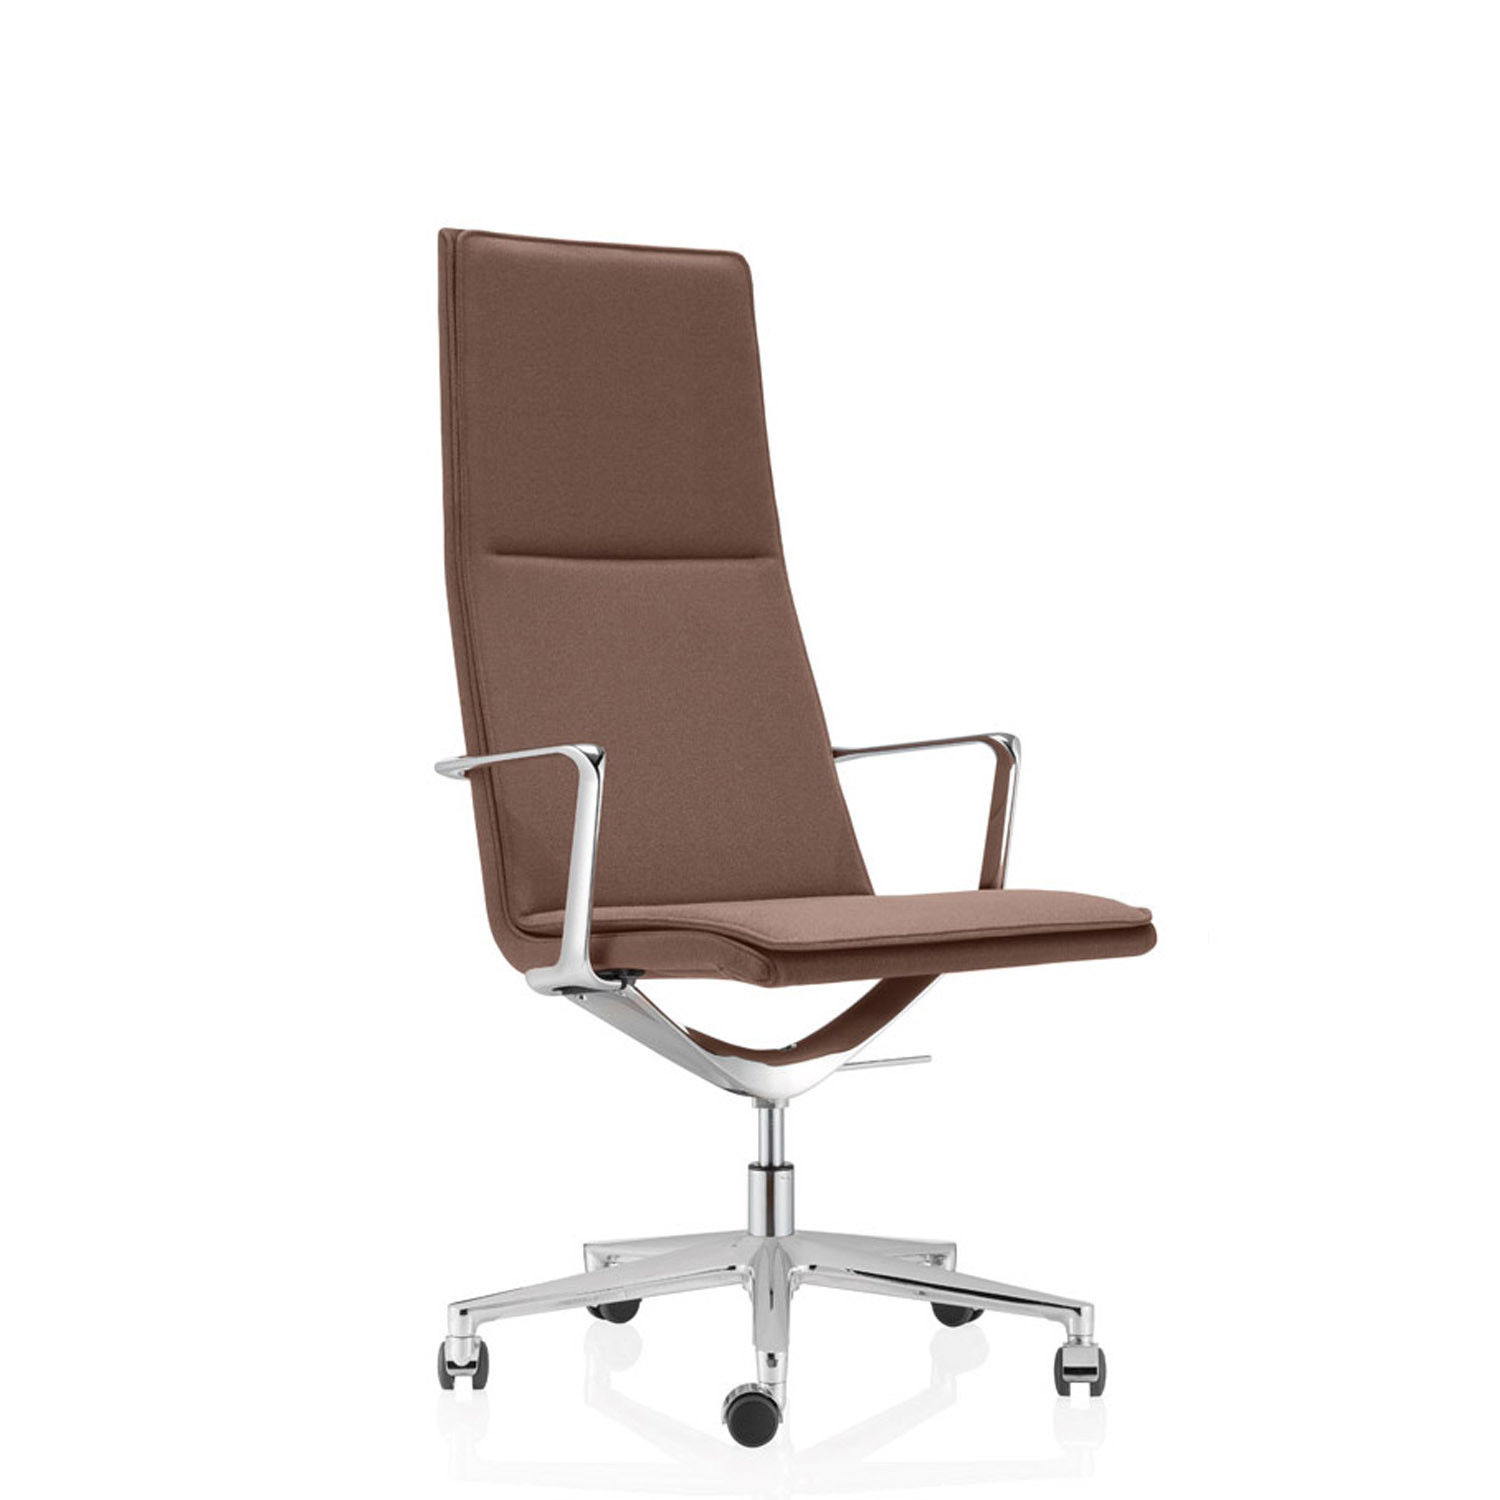 Valea High Back Swivel Chair